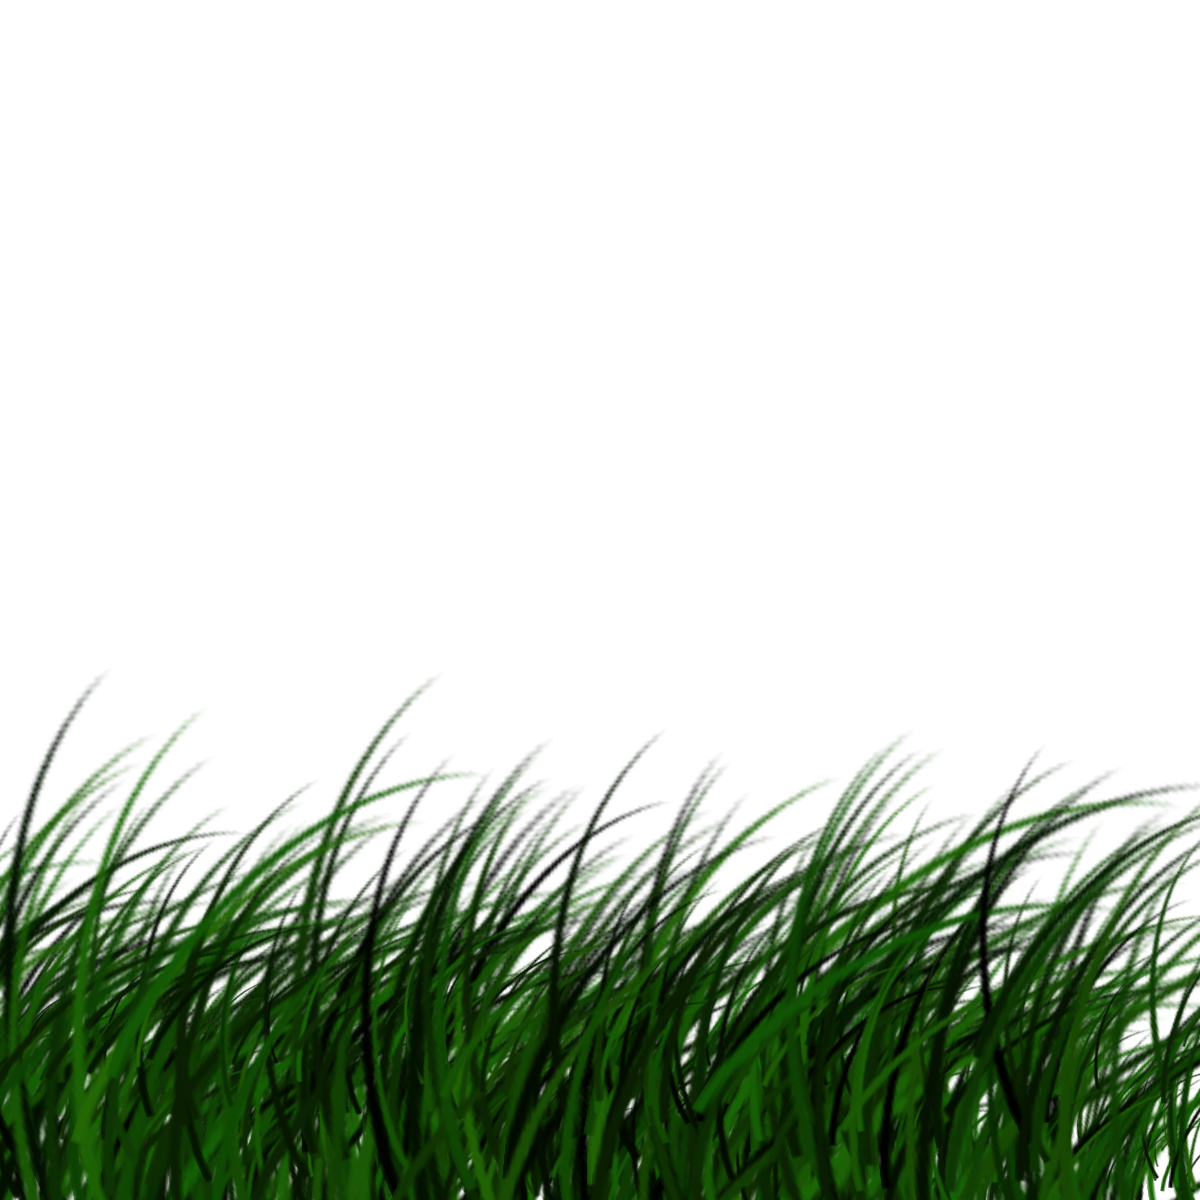 Free download high quality grass png transparent image